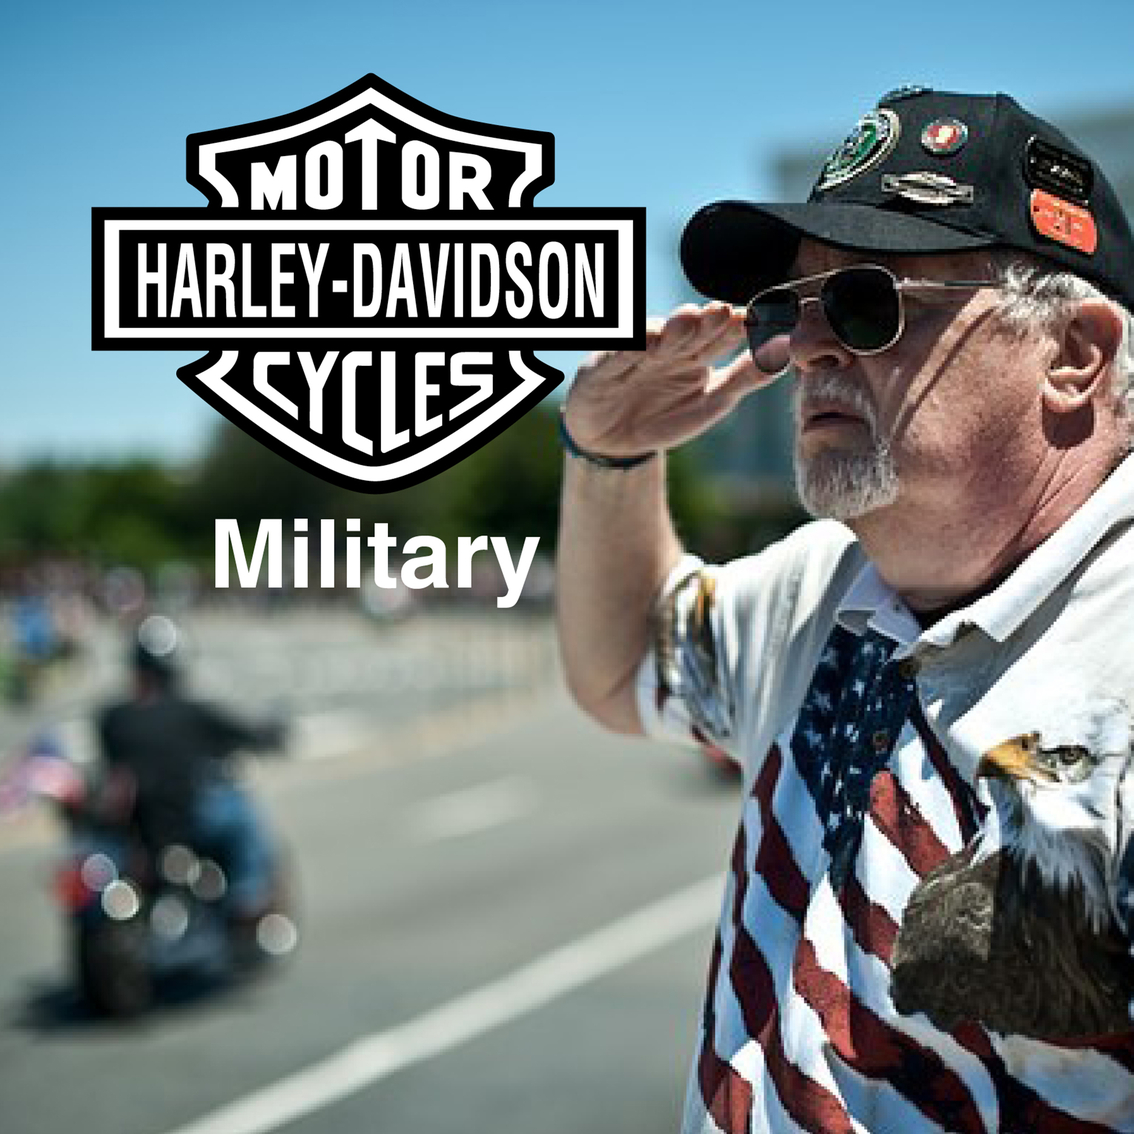 Latest House Of Harley-Davidson promo codes and coupons Rack up on deals while they last! Save big with House Of Harley-Davidson discount code to boost savings bestly when order Motorcycles online. Save big bucks w/ this offer: $1 off beverages at all house of harley events. Best shopping guide.